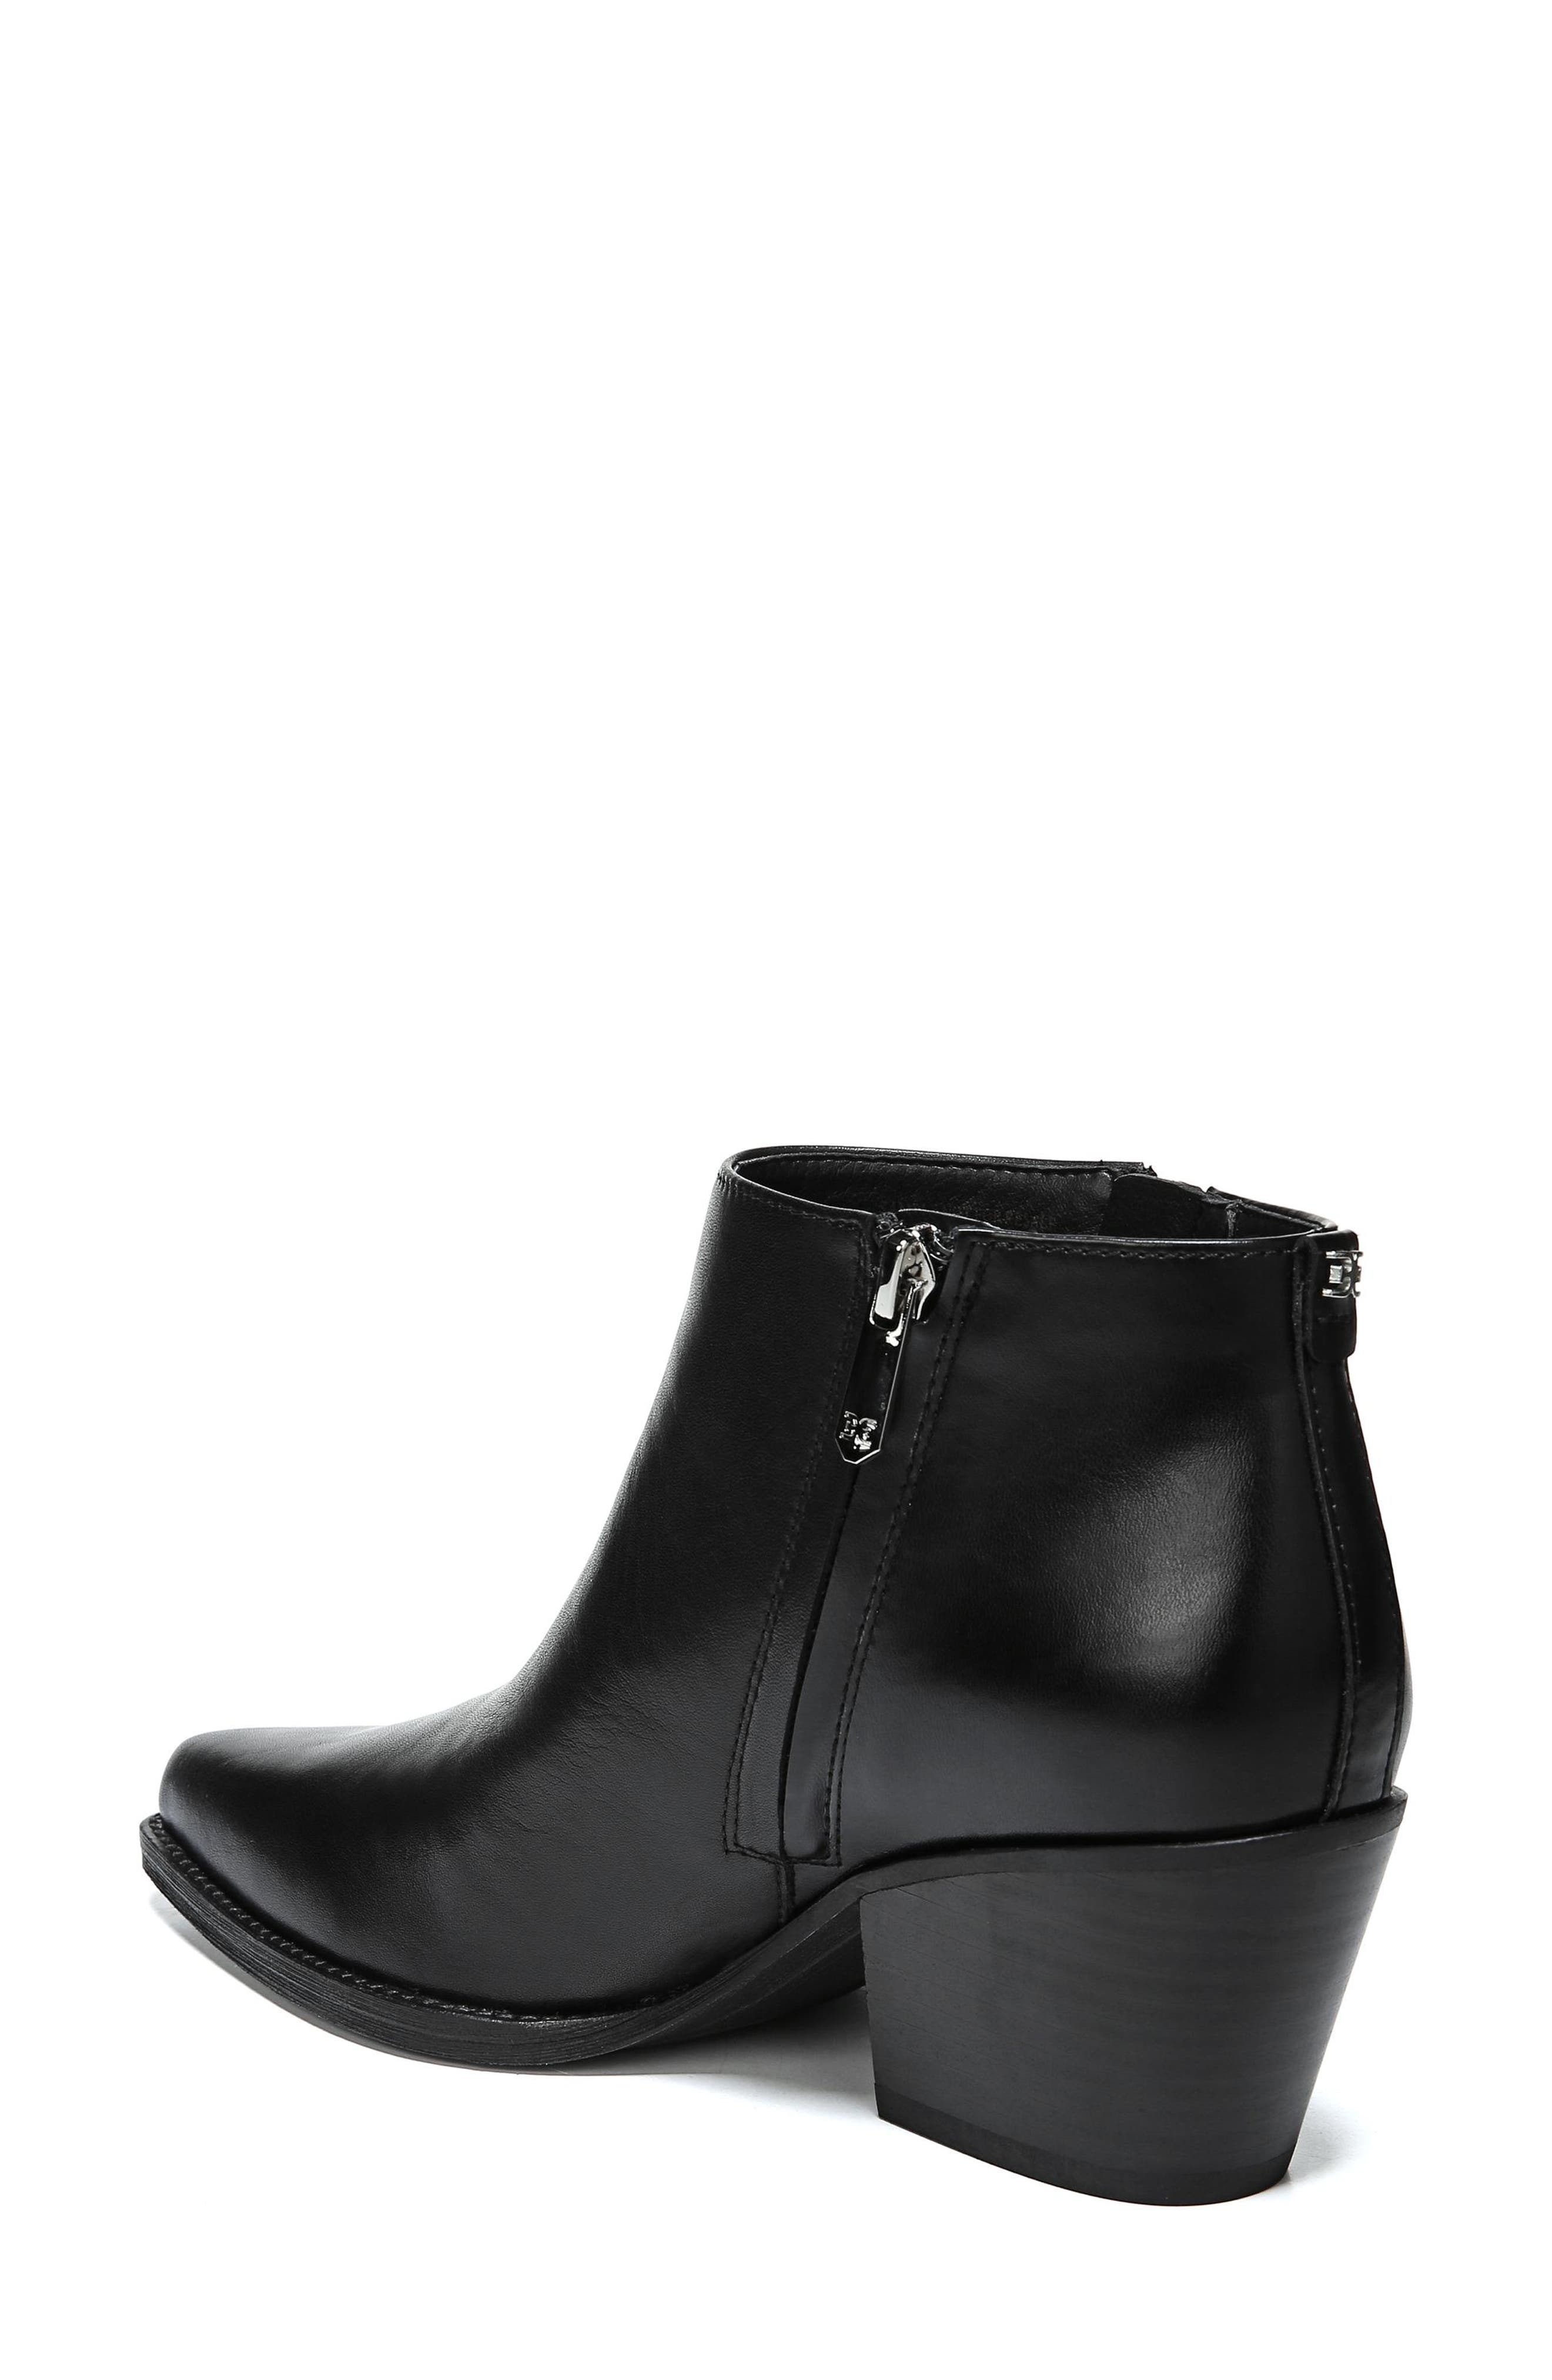 Walden Bootie,                             Alternate thumbnail 2, color,                             BLACK LEATHER